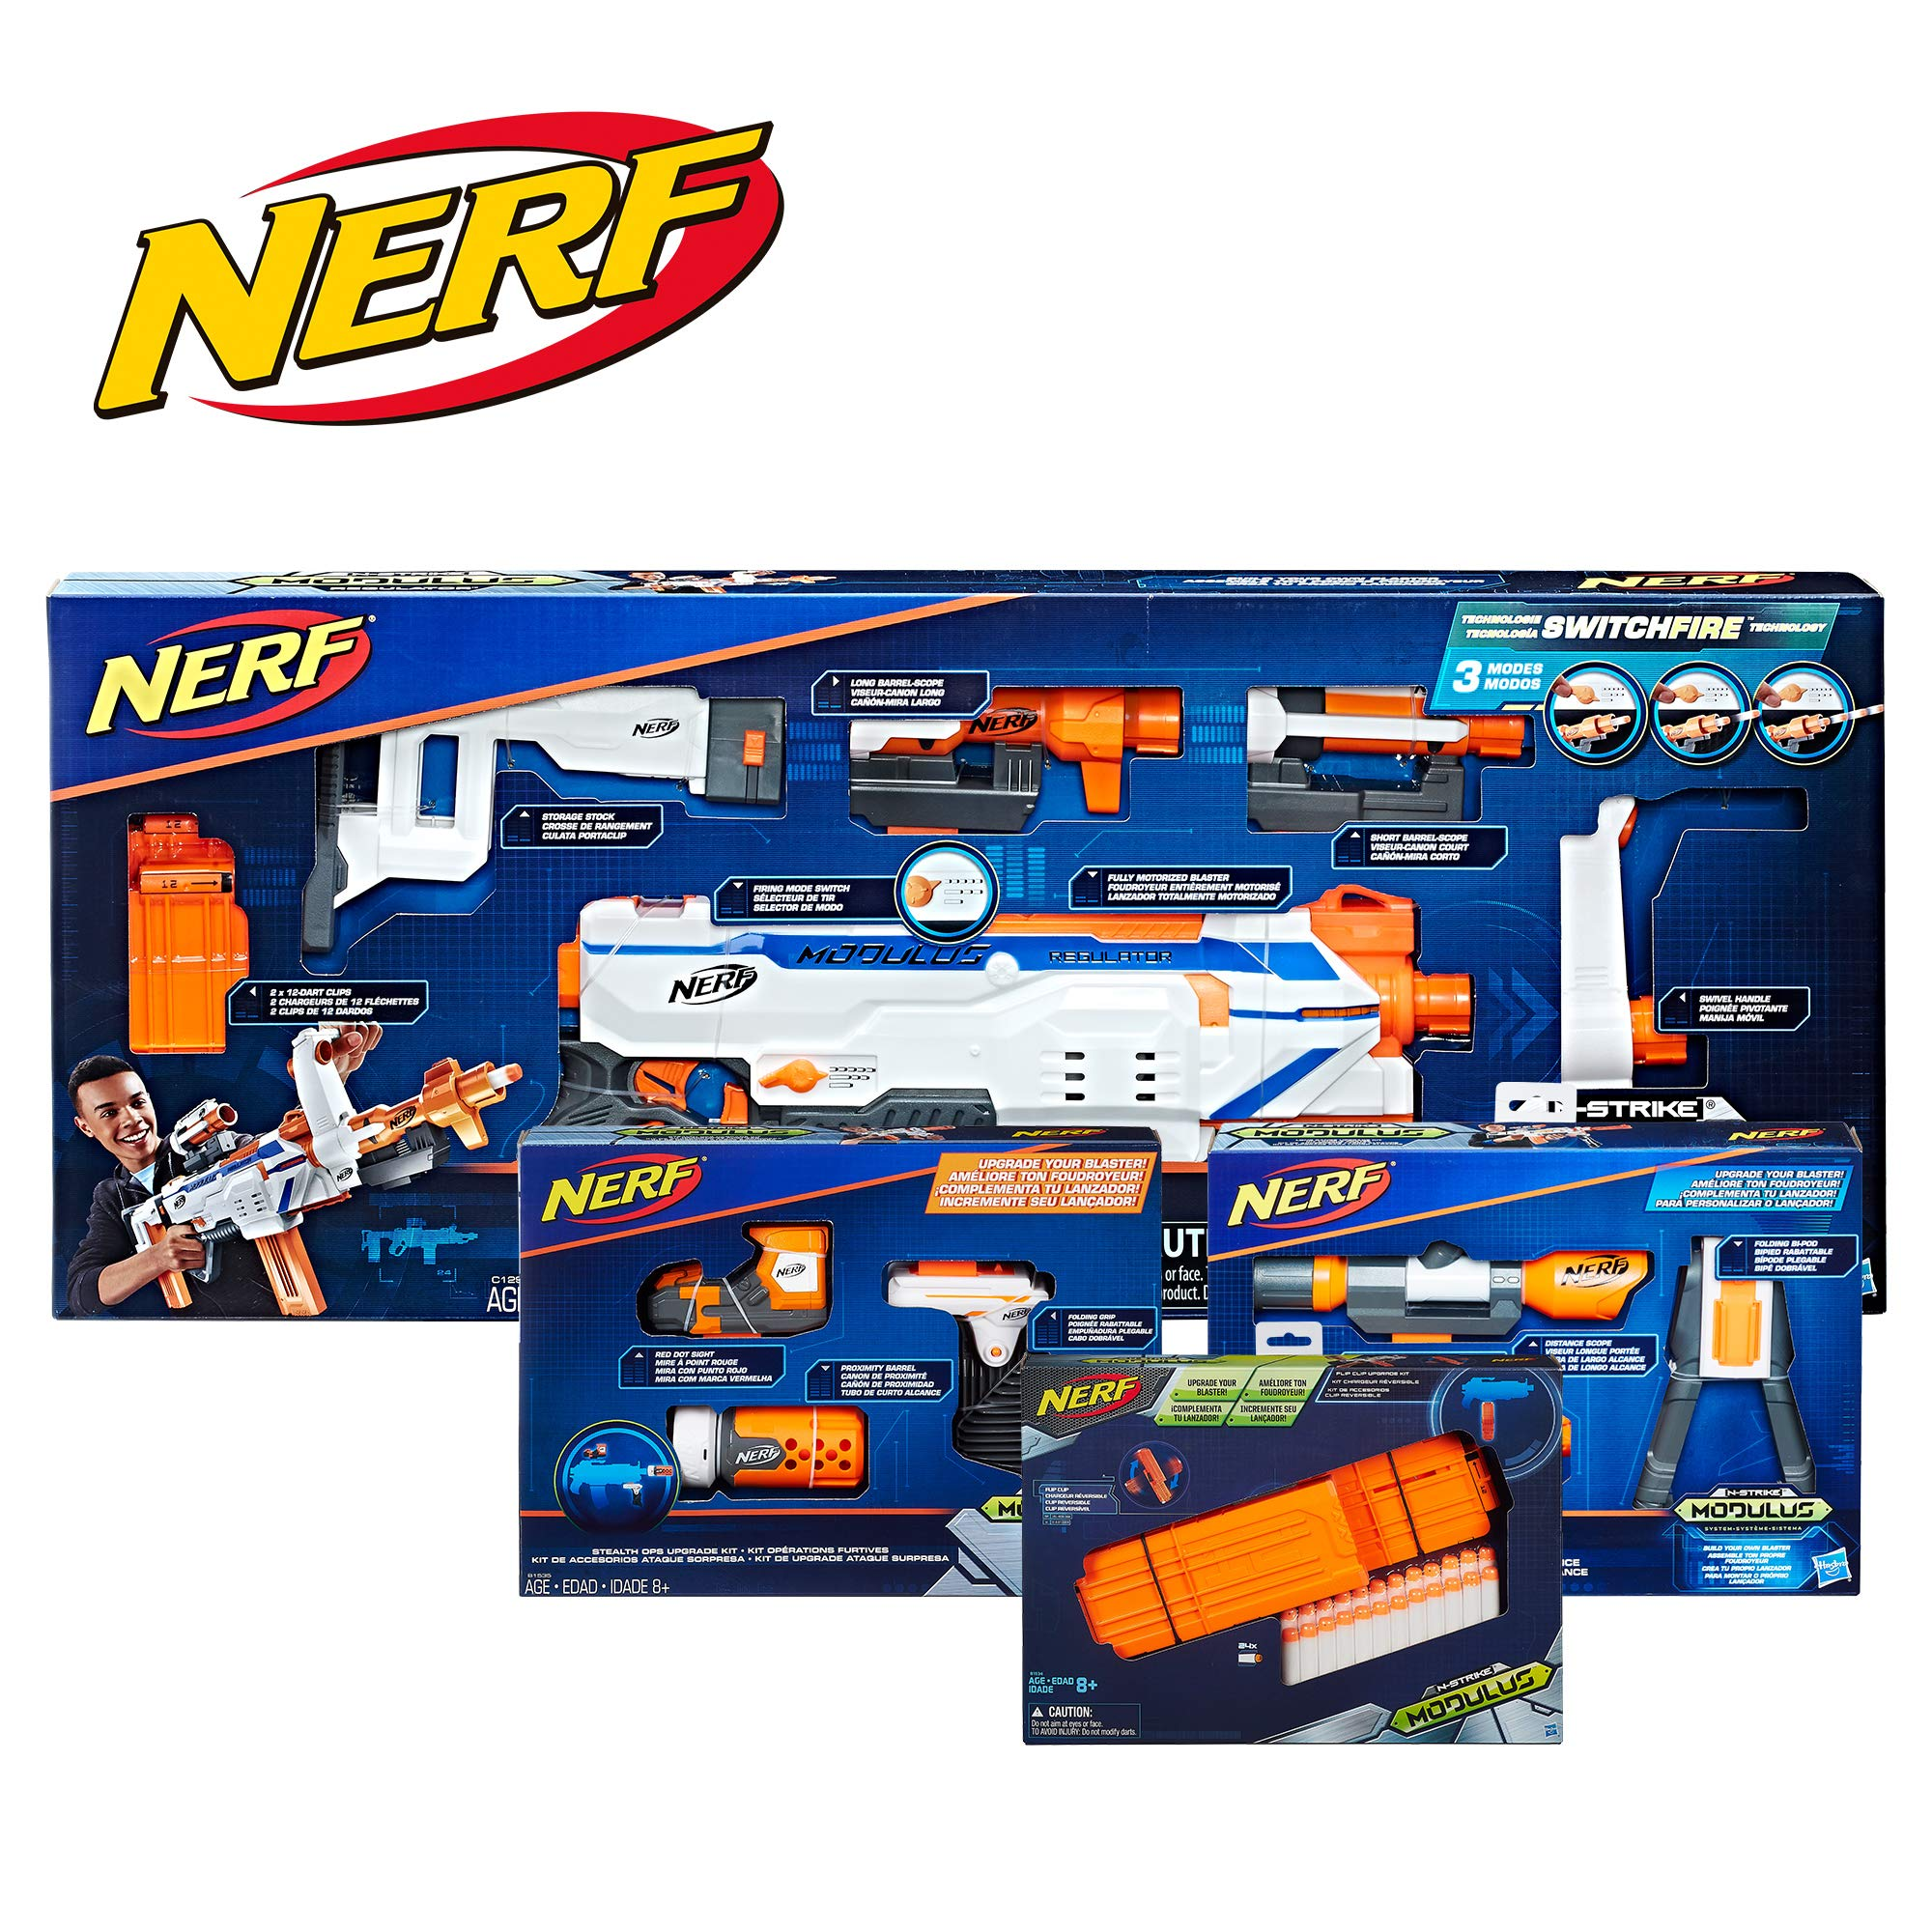 NERF Regulator Dart Firing Customizing Accessories